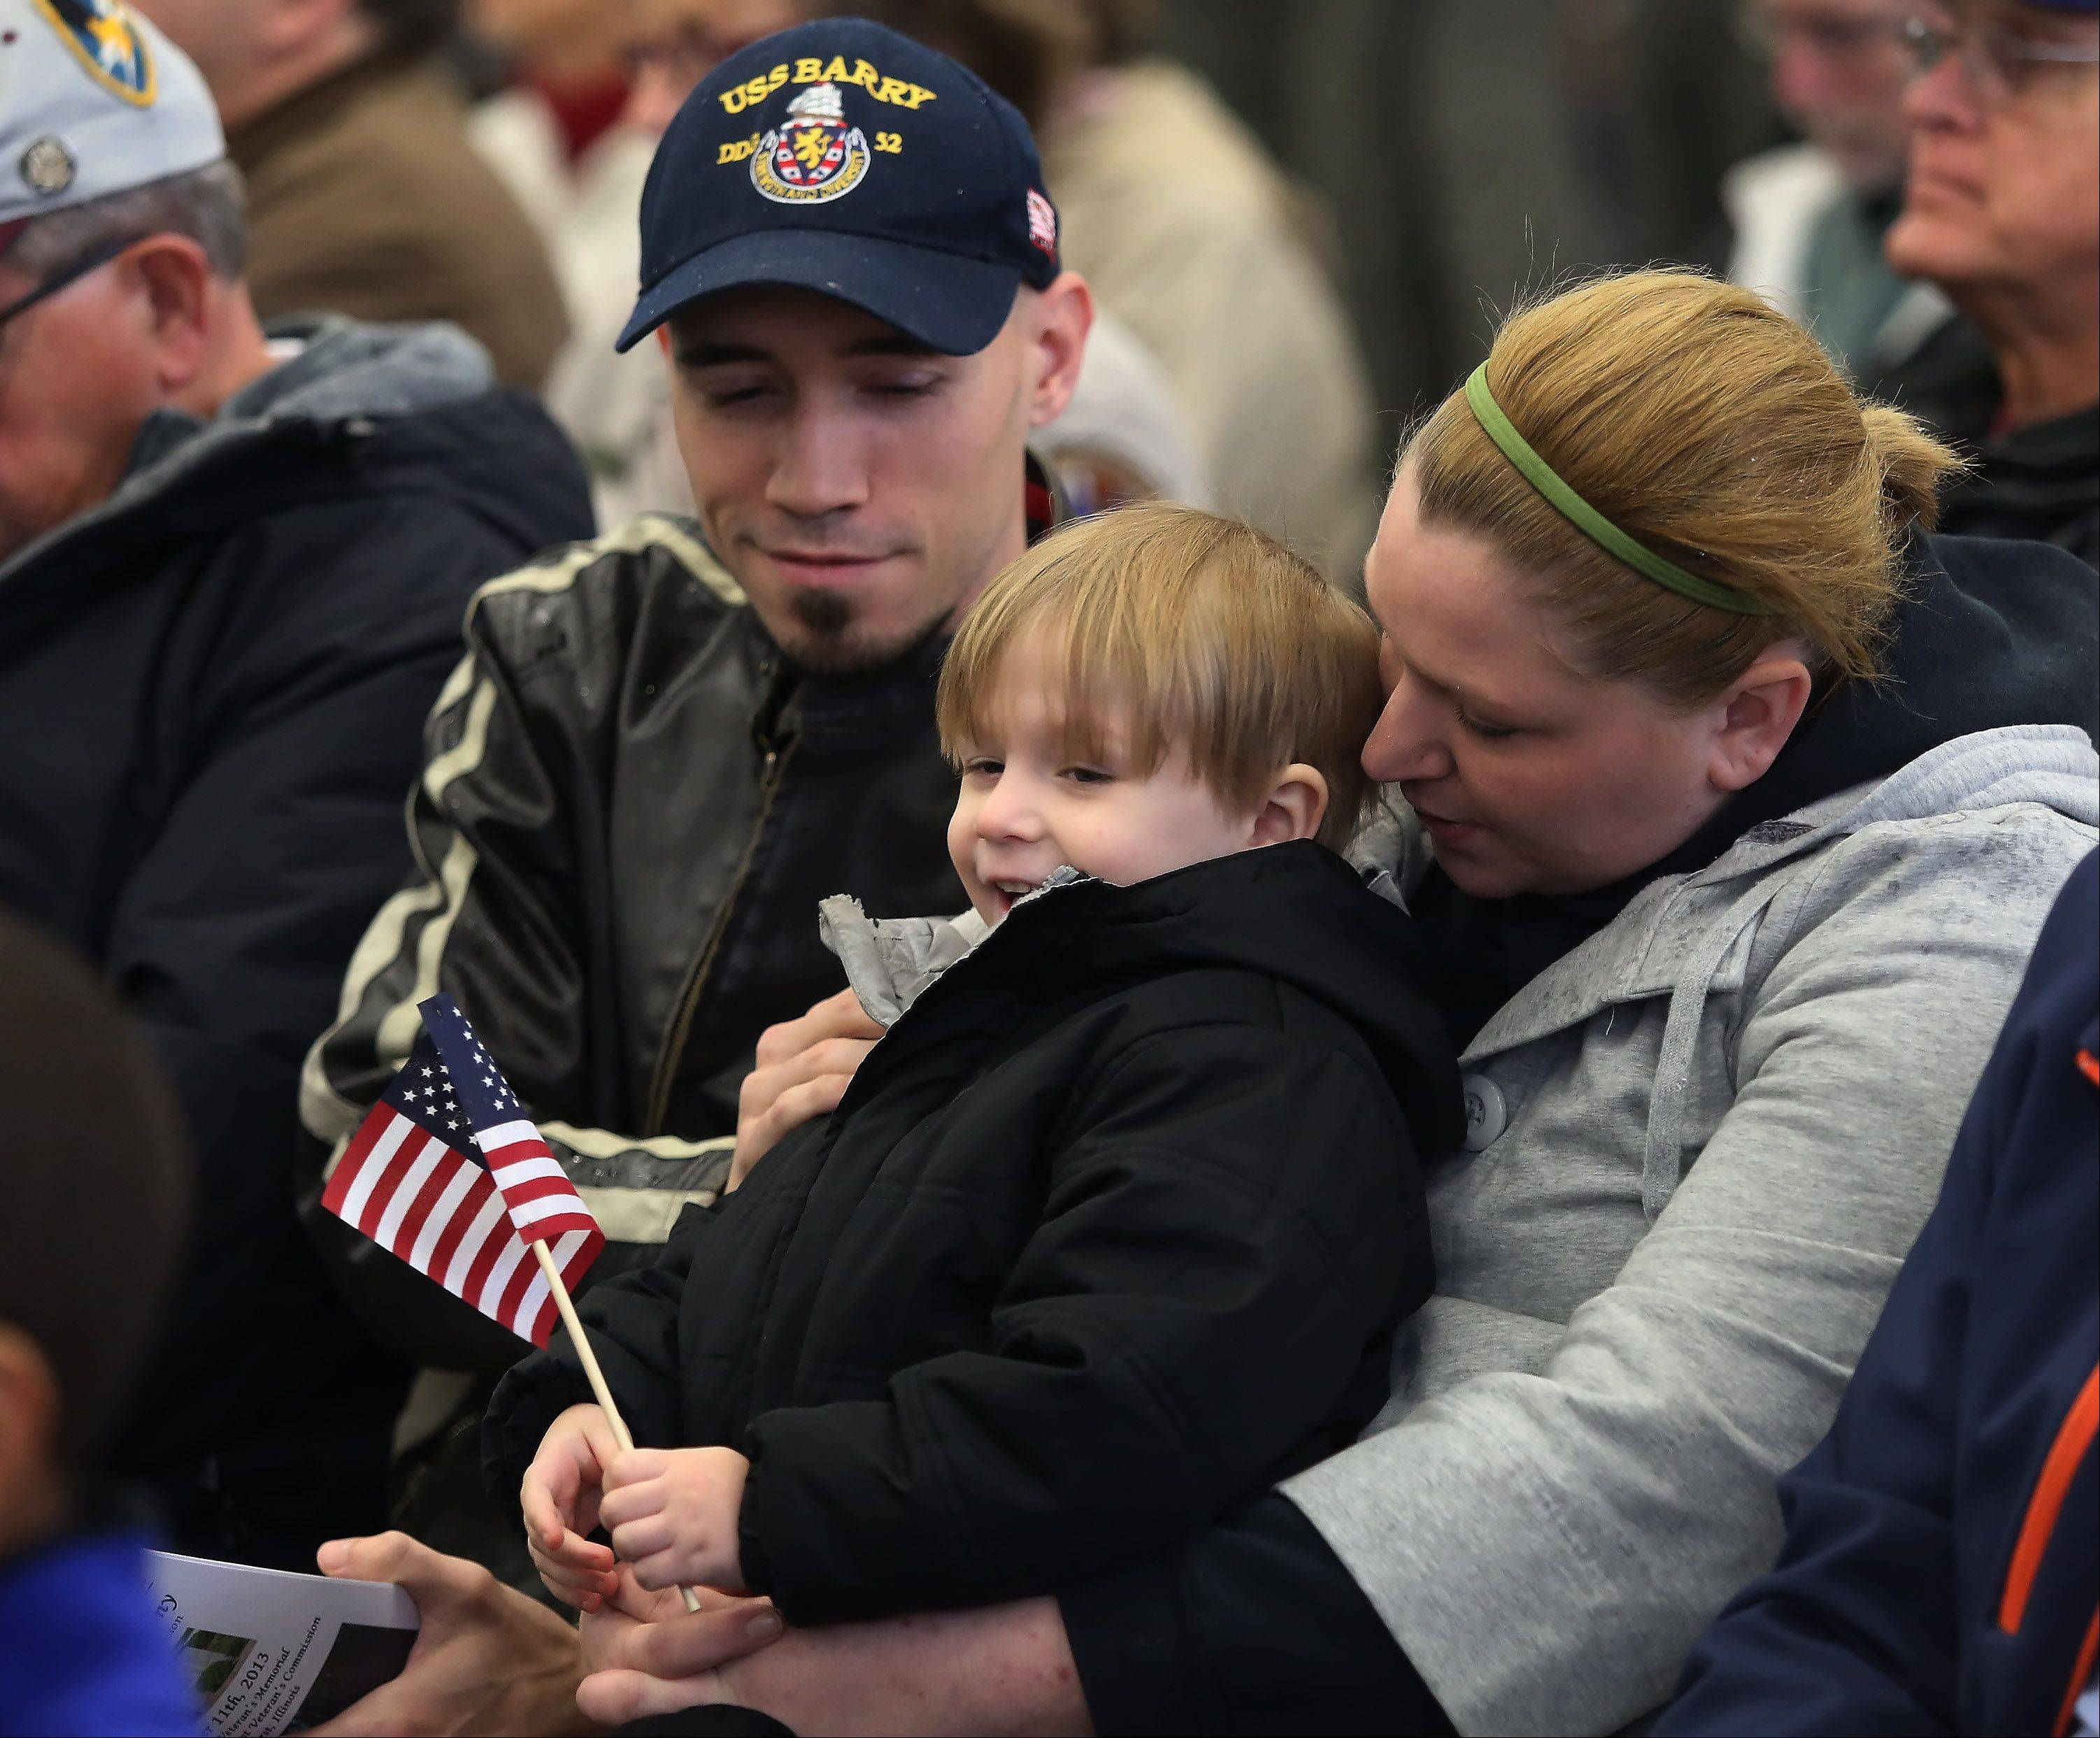 Alex Norlin, 4, of Lake Zurich waves a flag as he sits with his parents Samantha and retired Navy Specialist Jonathan Norlin during the Veterans Day ceremony Monday at Lindenhurst Municipal Center and Veteran's Memorial.